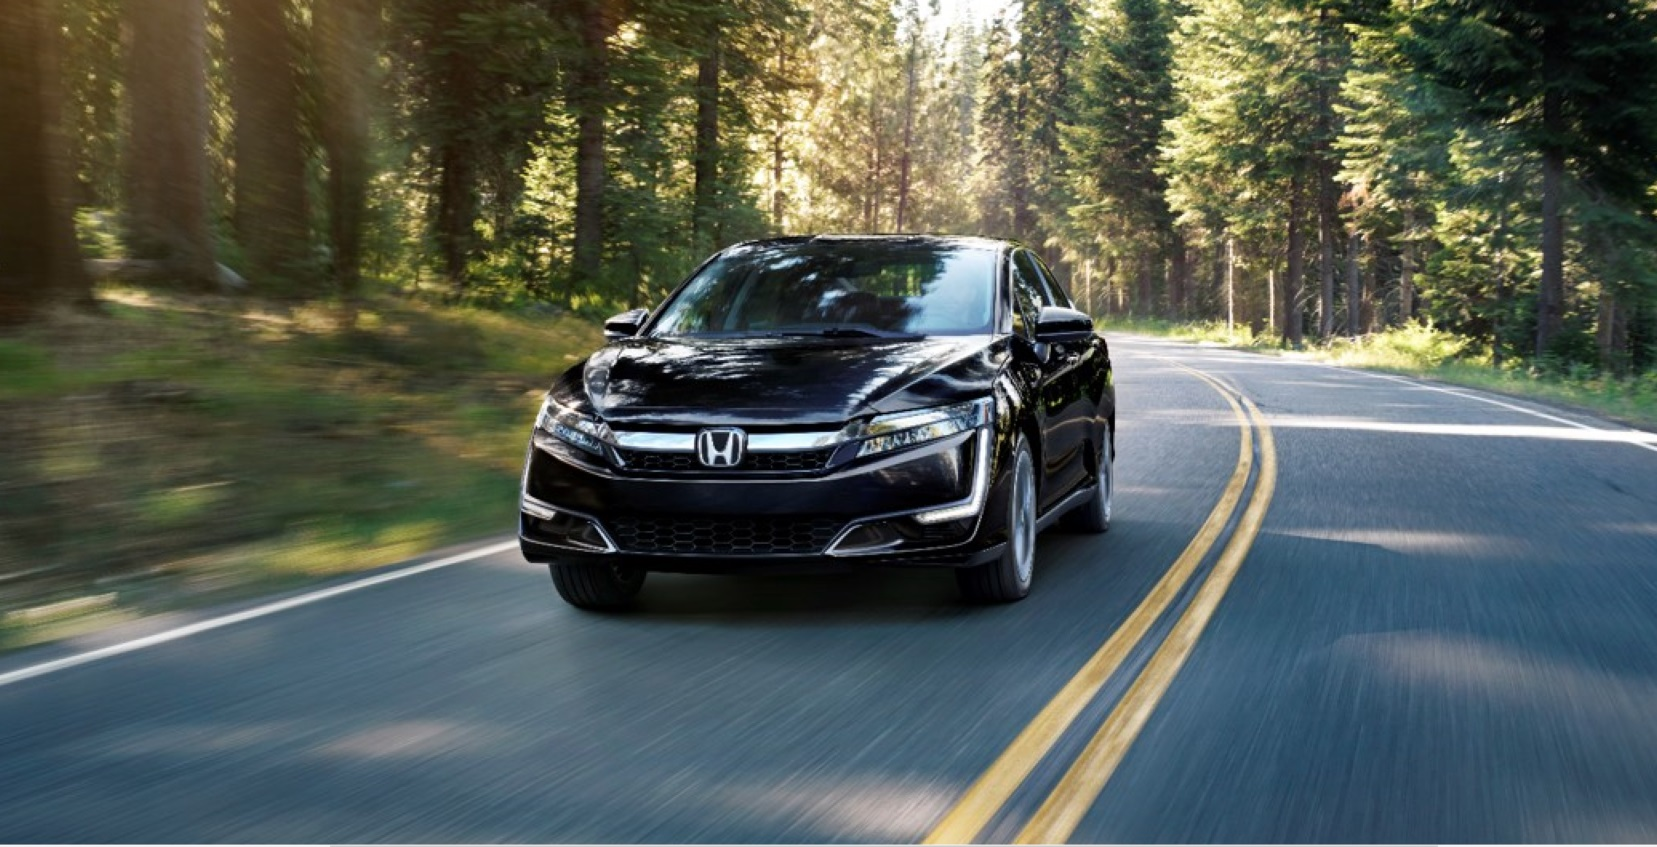 Vw Clean Diesel >> 2018 Honda Clarity Plug-In Hybrid rated at 47 miles of range